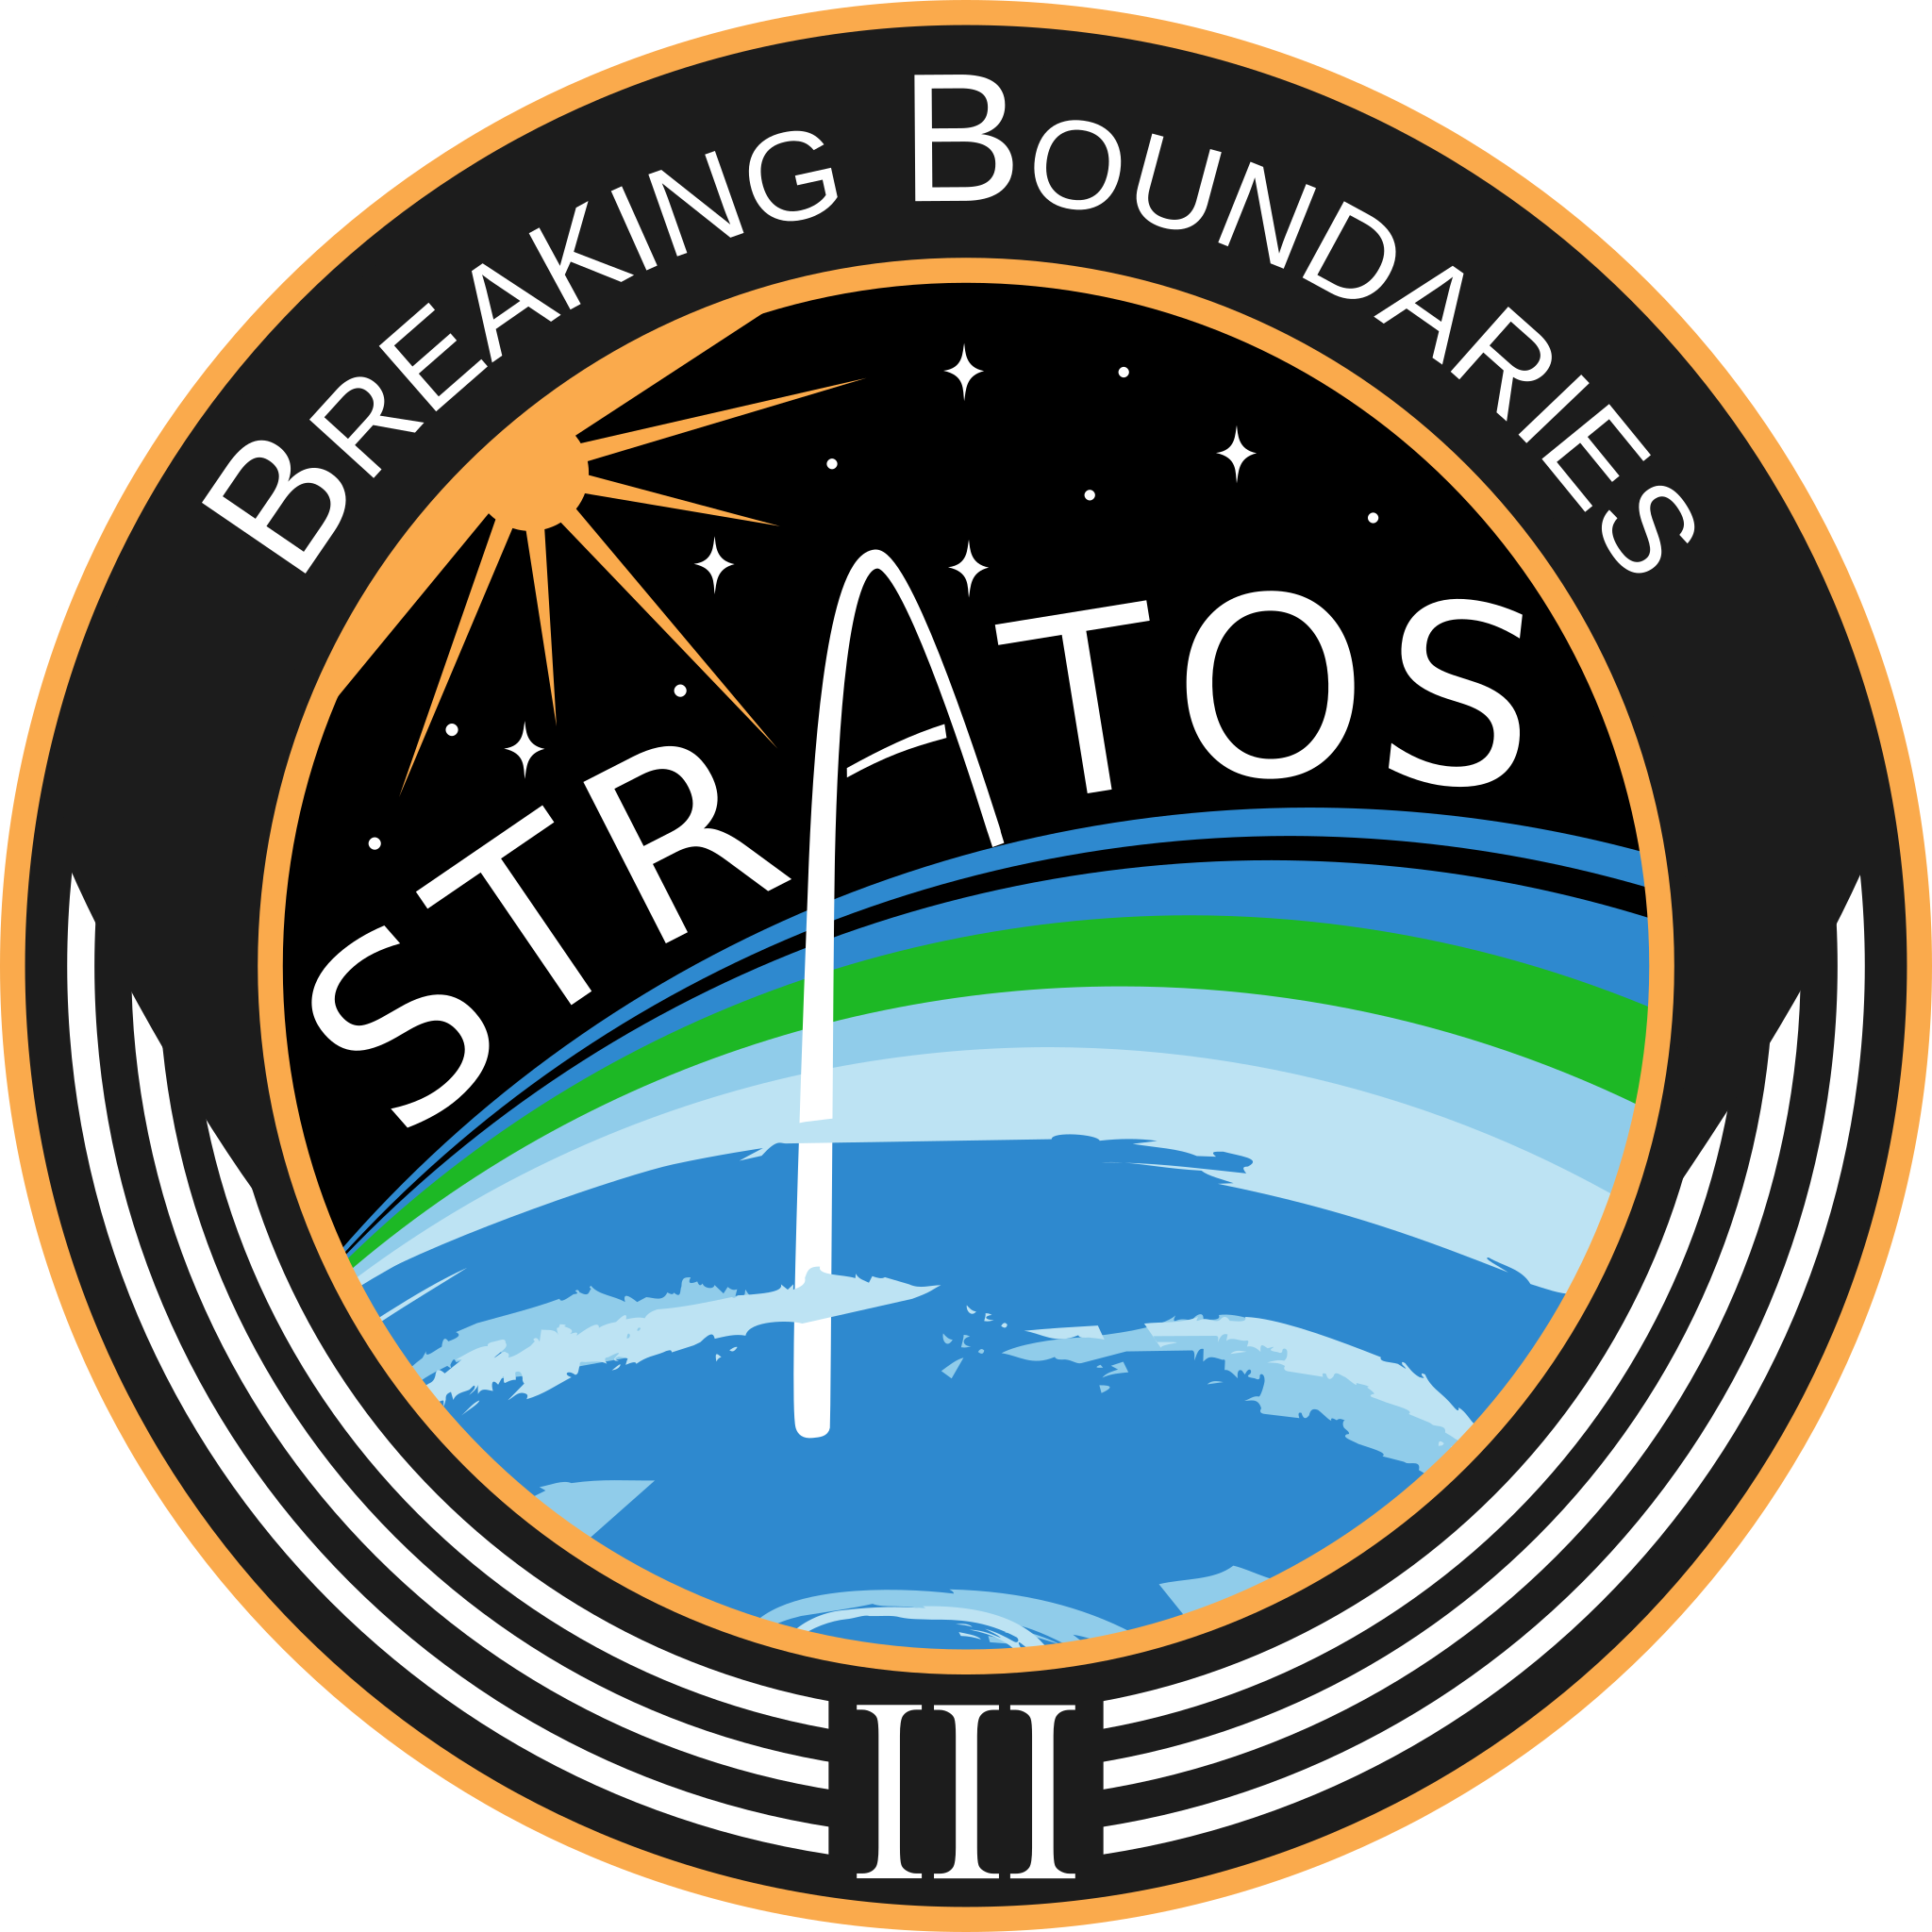 DARE stratos_iii_mission_patch_2048-1